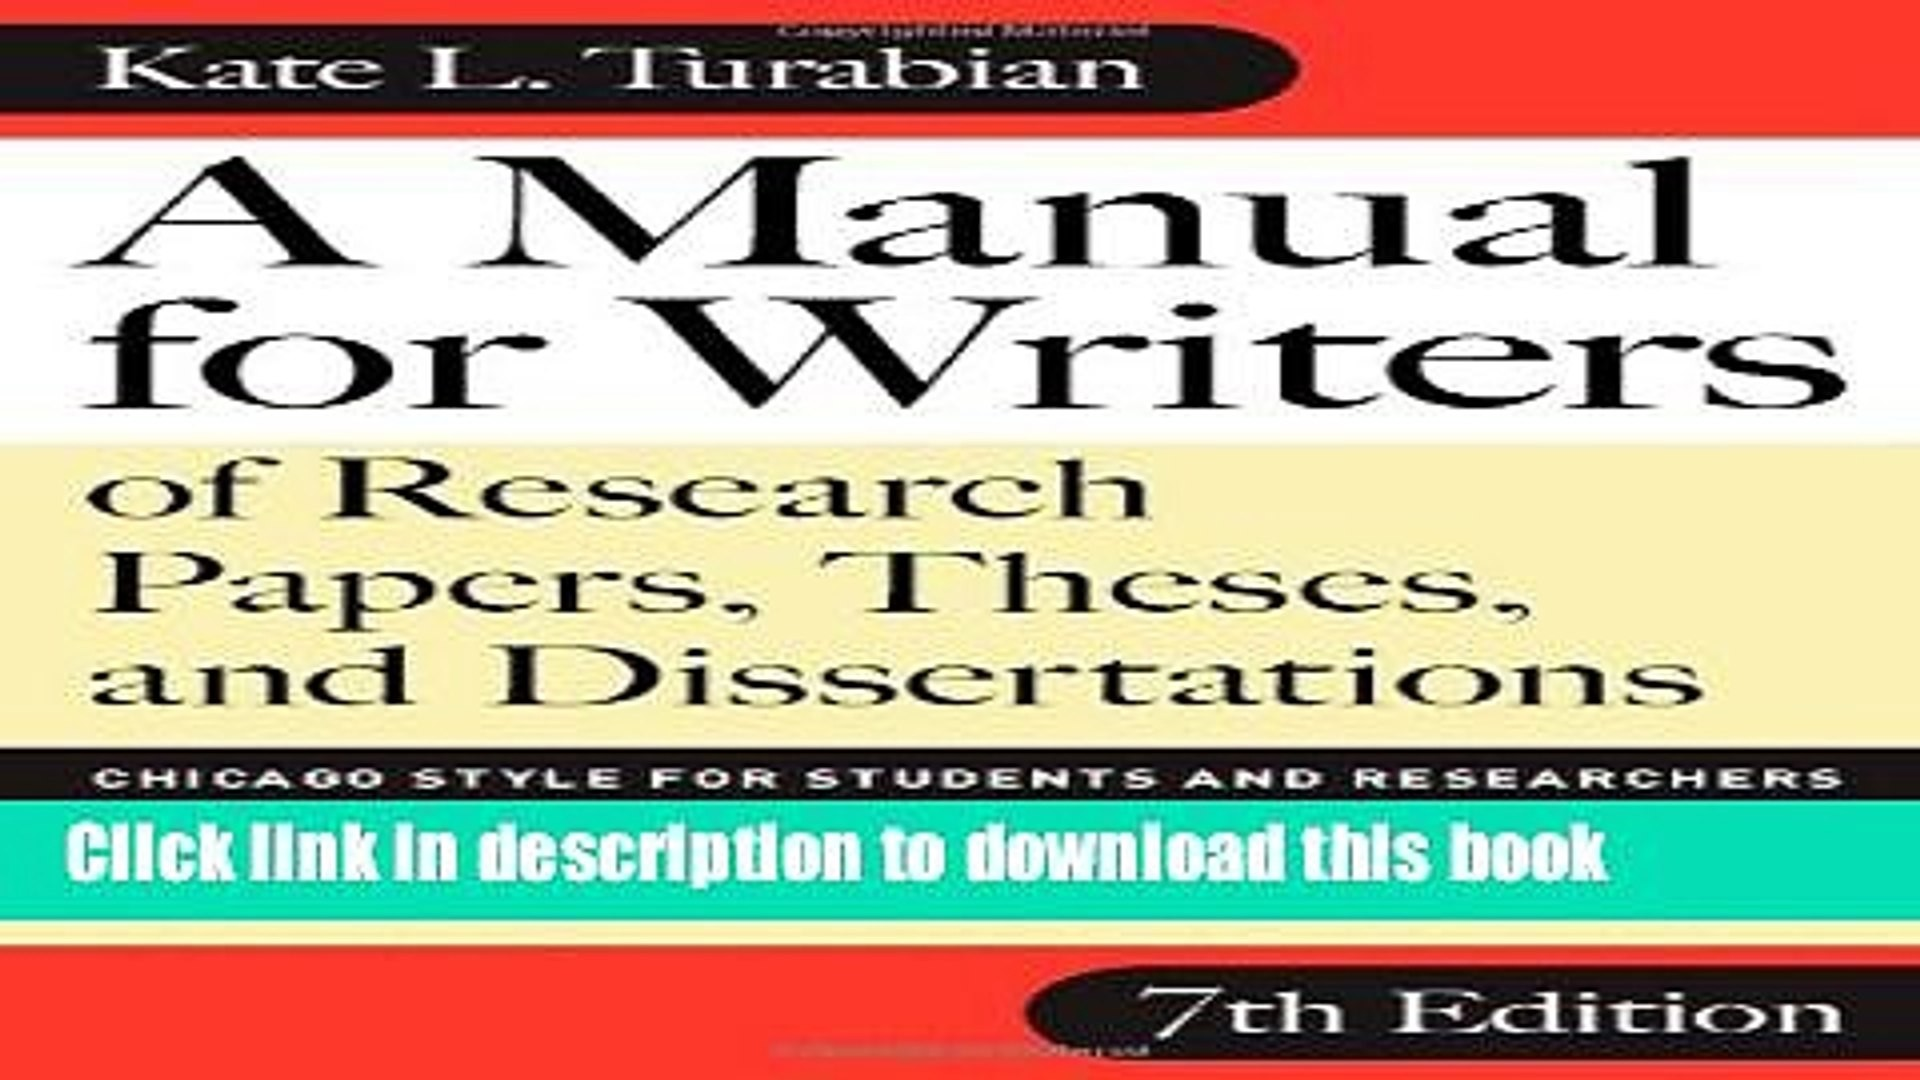 018 X1080 Hbb Manual For Writers Of Researchs Theses And Dissertations 9th Edition Frightening A Research Papers Pdf 1920